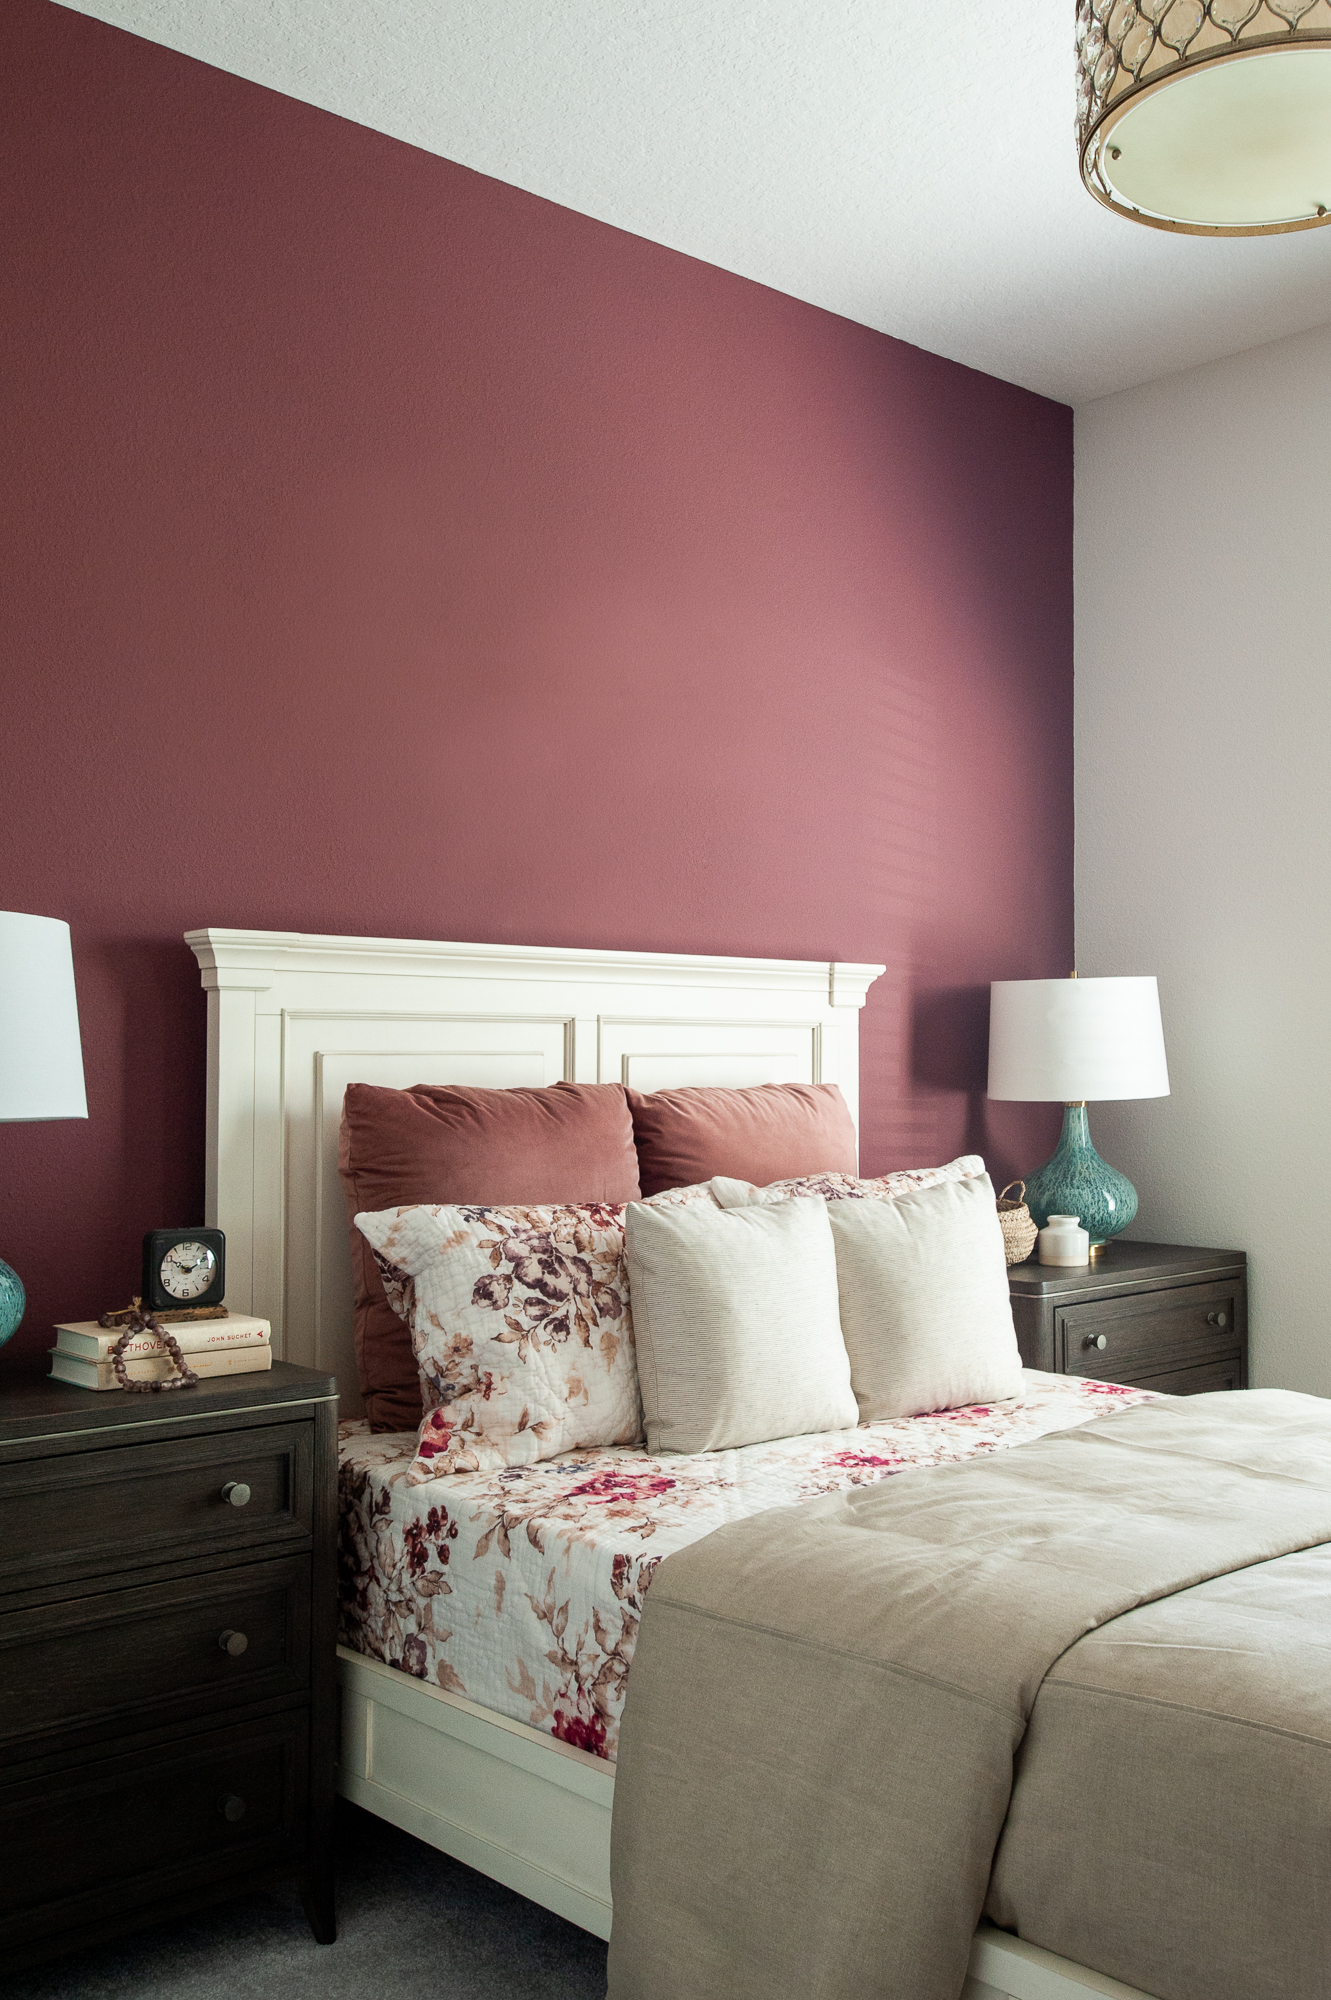 Micamy_Interior Designer_Design_Interior_Model_Merchandising_Guest Bedroom_Accent Wall_Uttemrost_UniversalFurniture_Schumacher_AmityBedding_Lennar_Blog.jpg